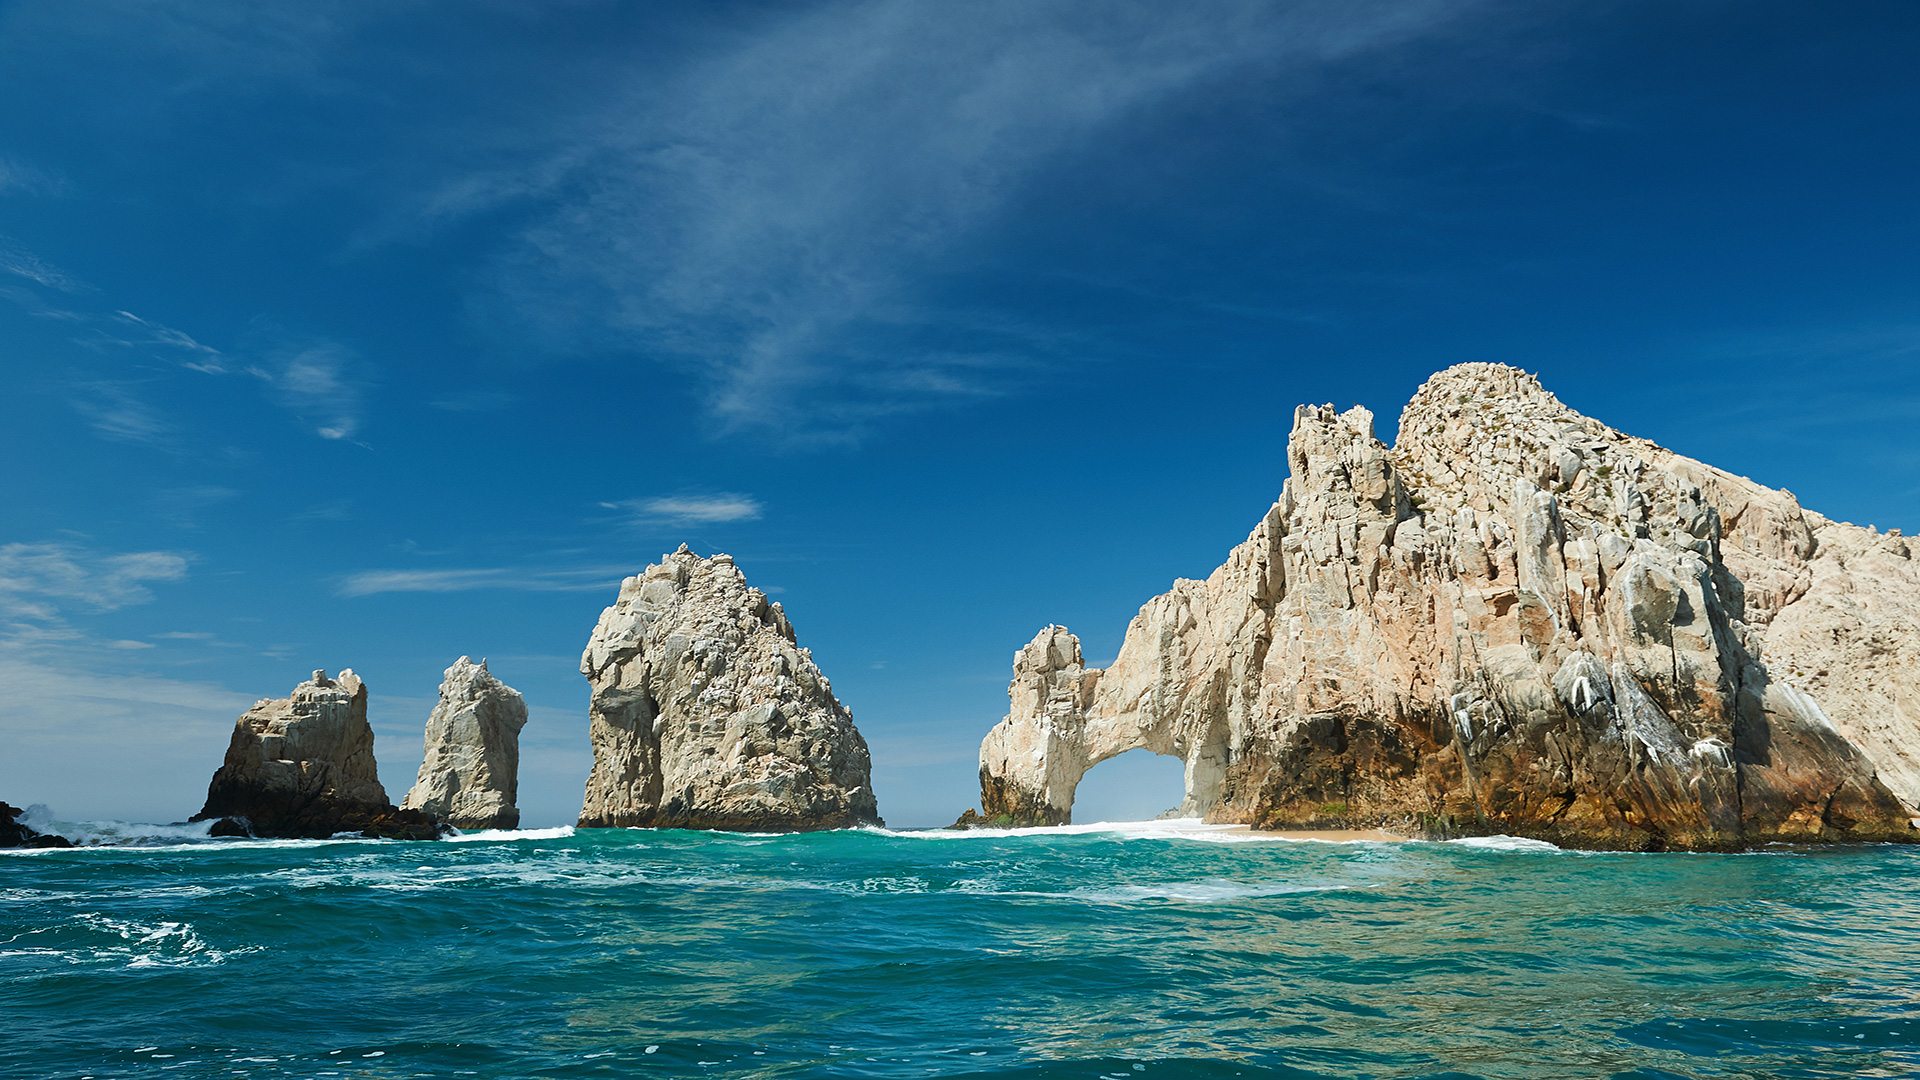 Difference Between San Jose del Cabo and Cabo San Lucas